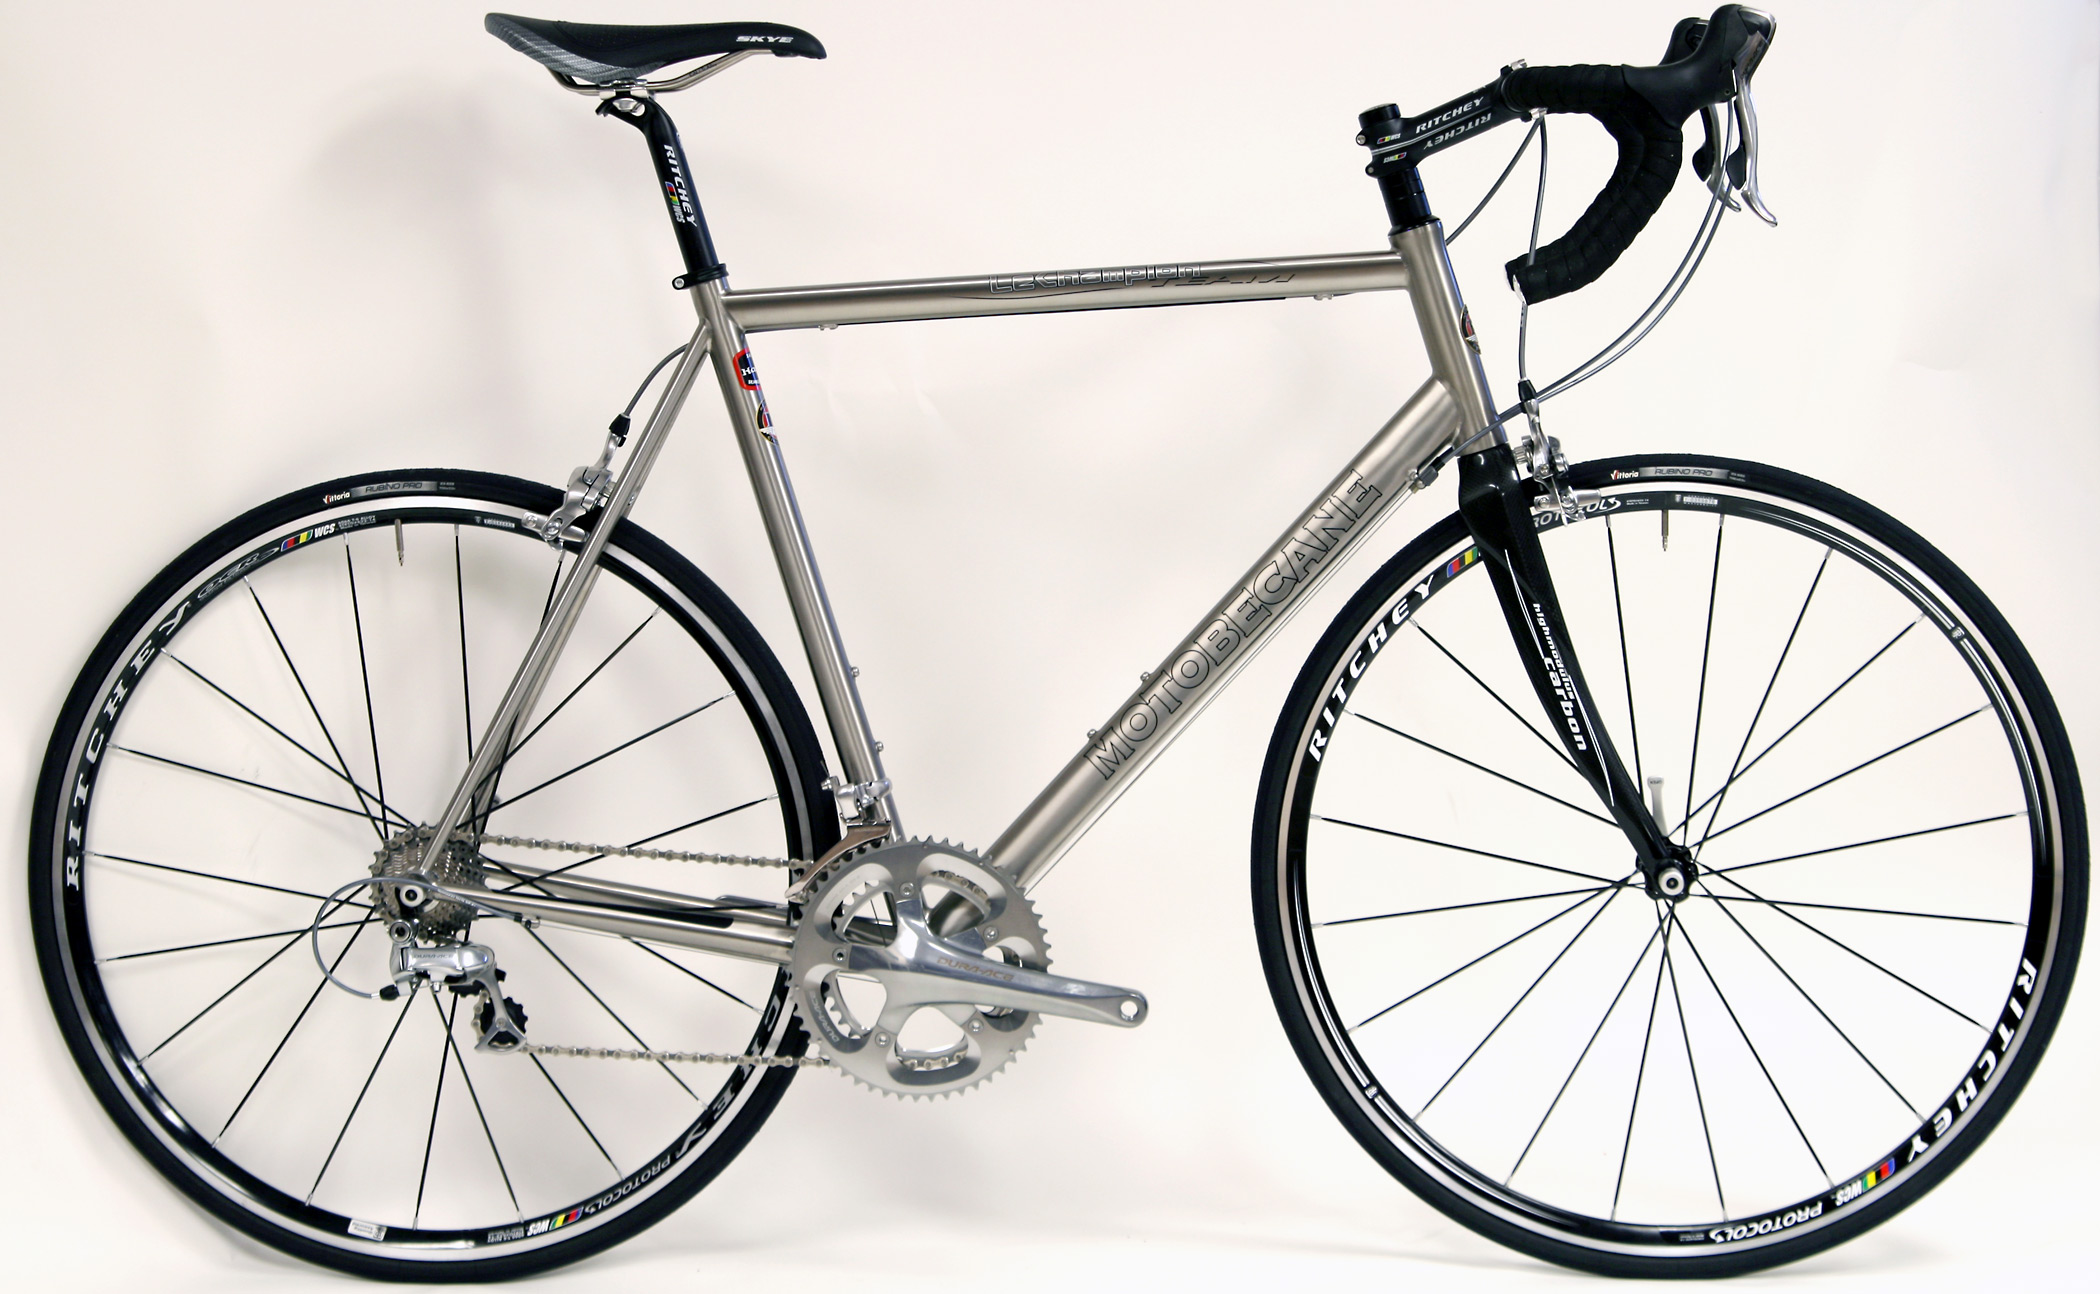 Bikesdirect Motobecane Reviews Motobecane Le Champion